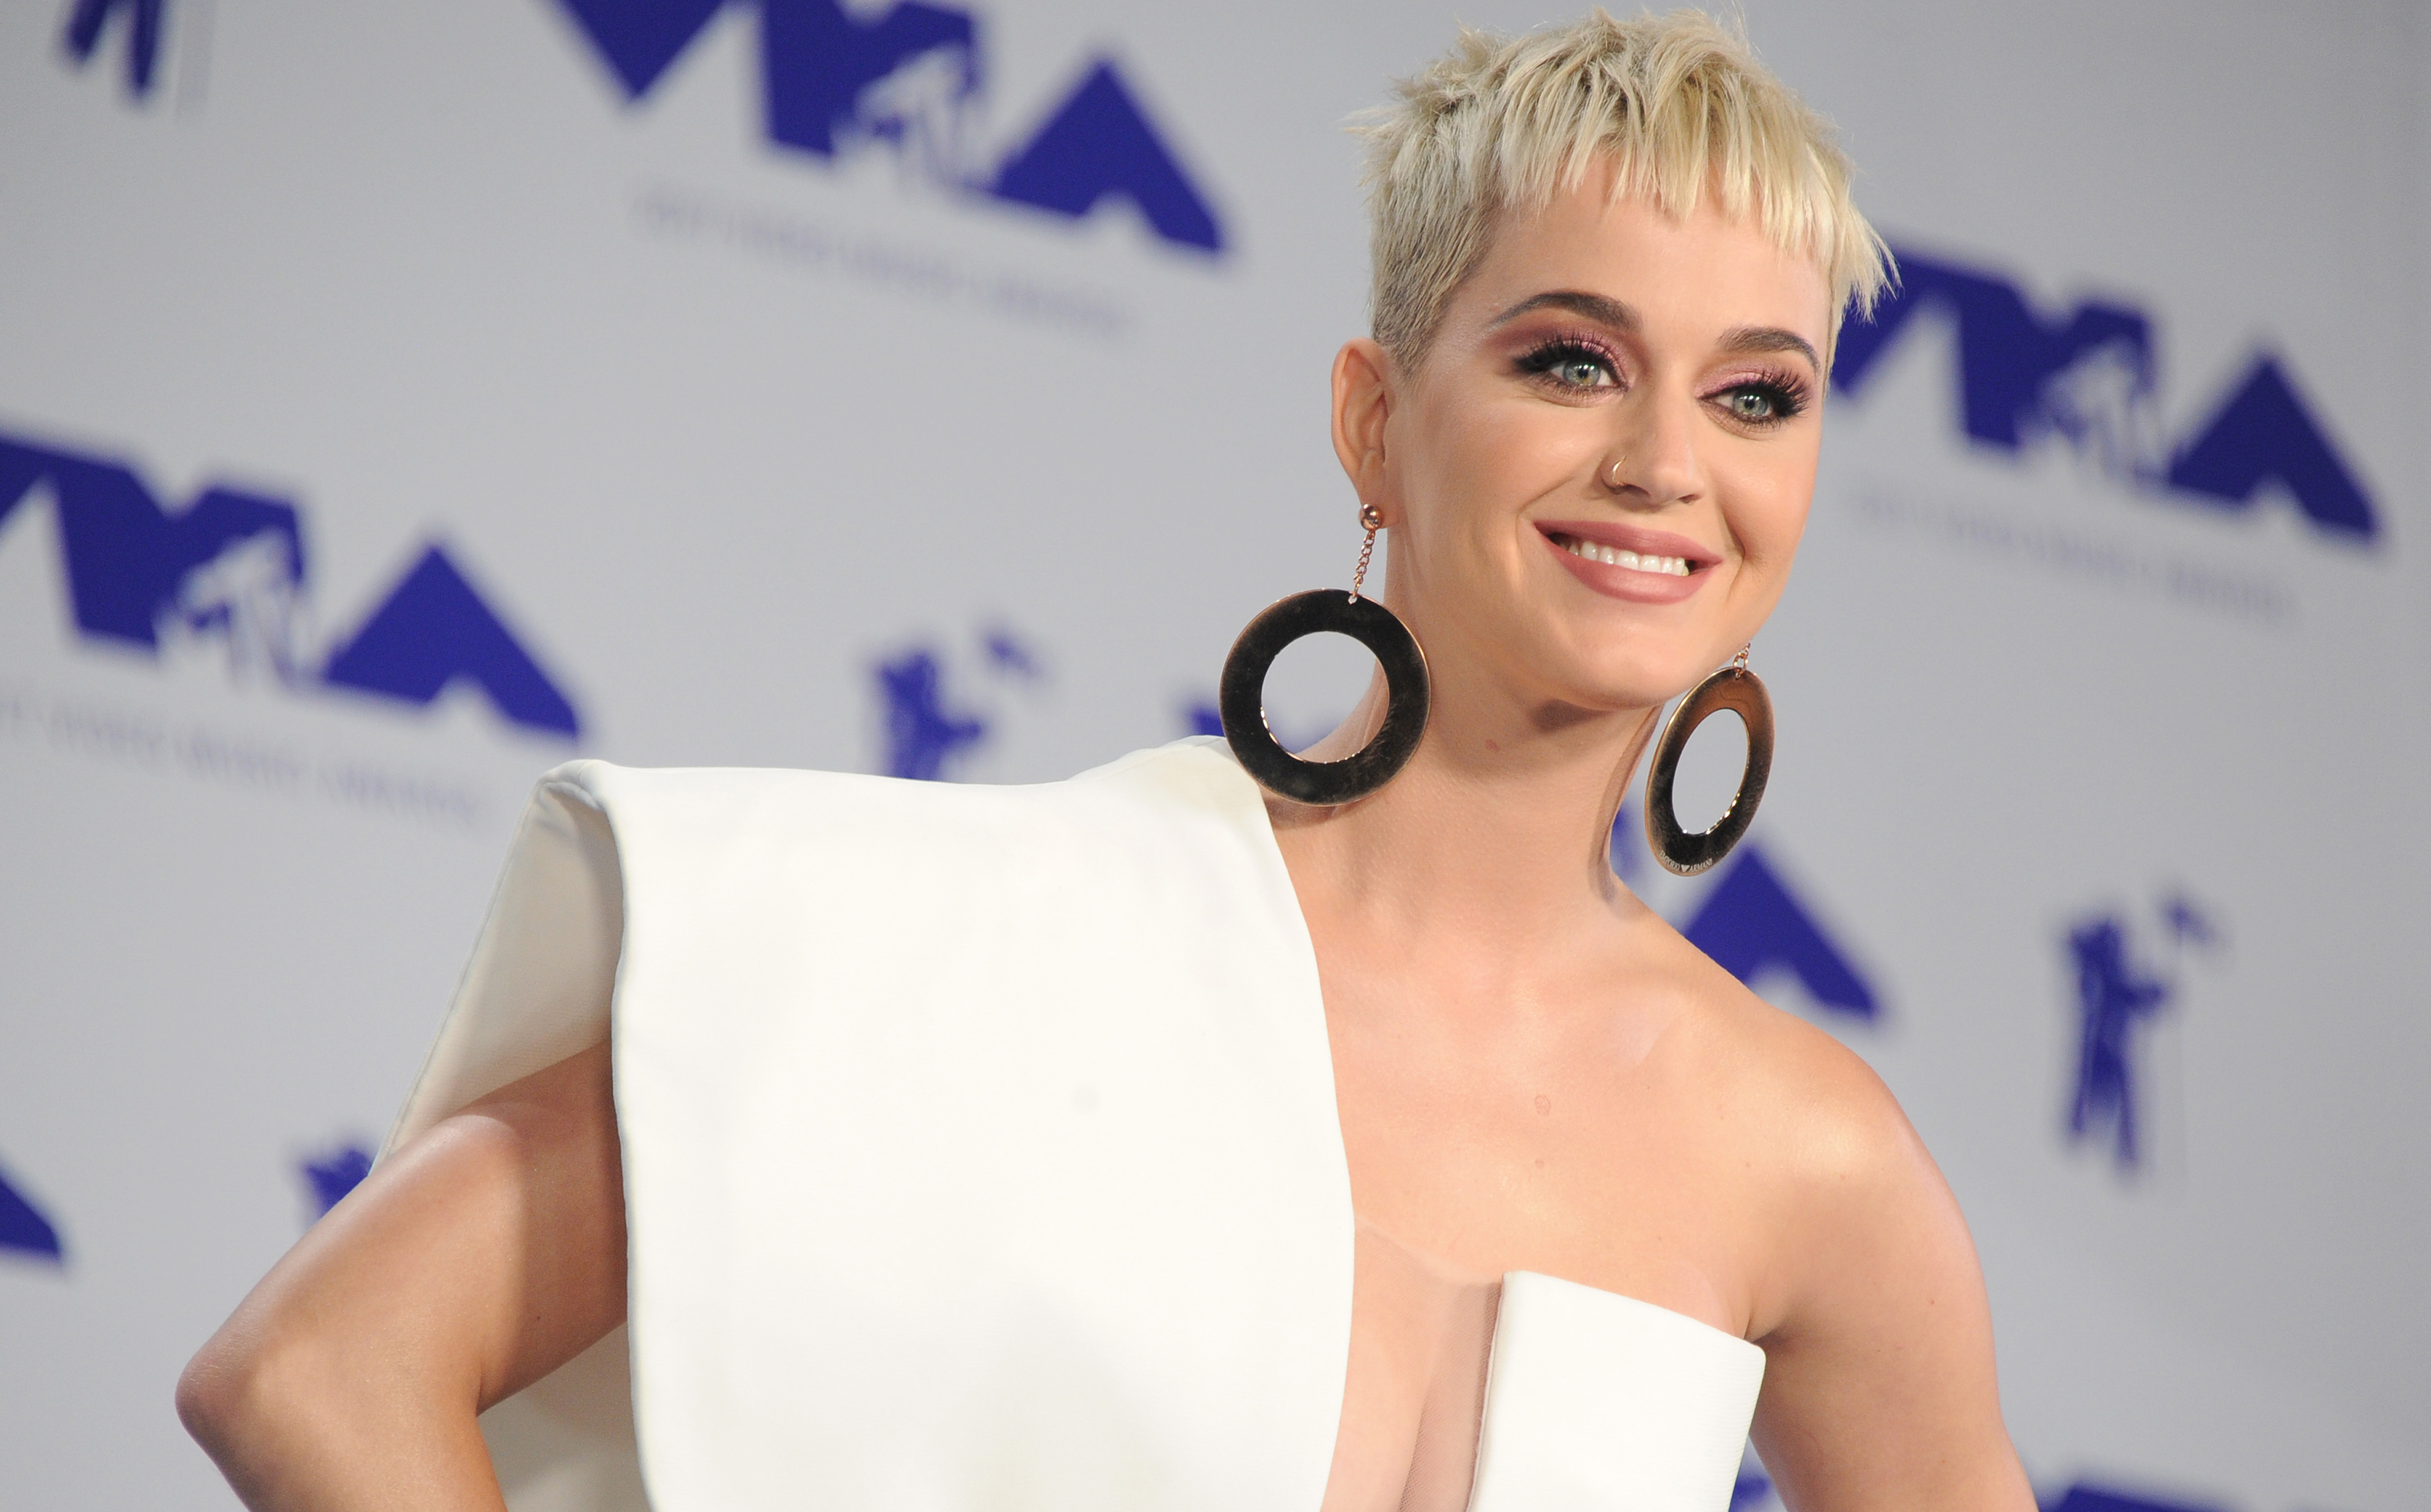 Katy Perry Reportedly Denied Chinese Visa to Perform at Victoria's Secret FashionShow